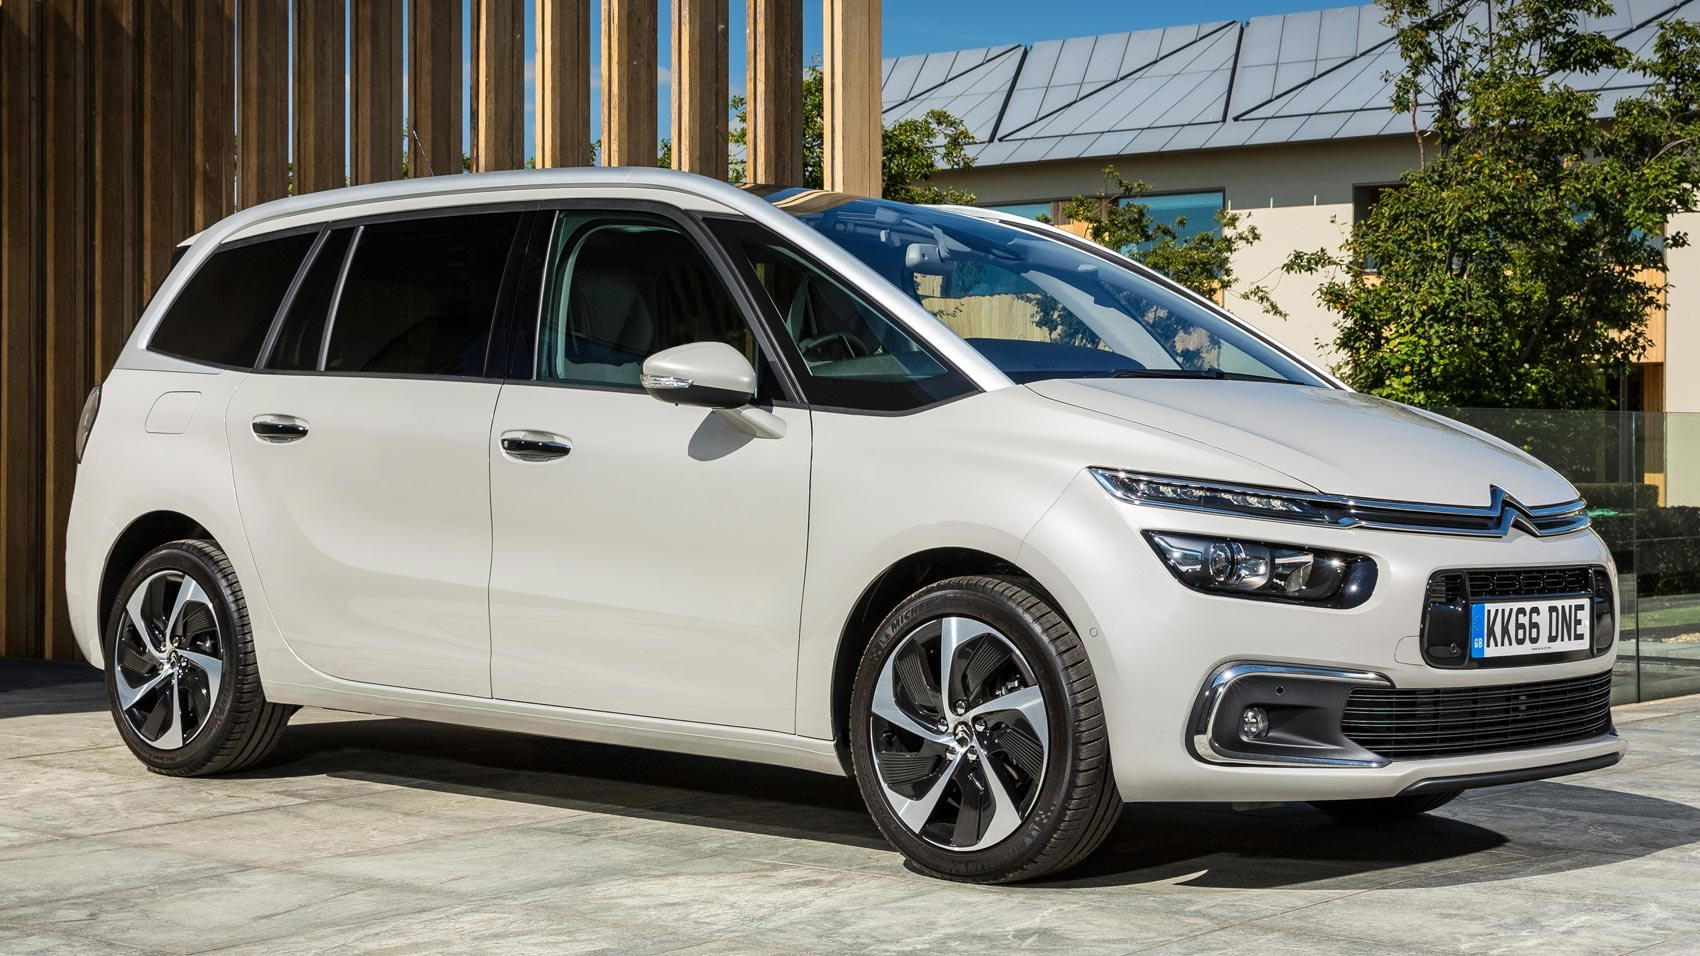 Best 7 Seater Cars >> The Motoring World Citroen Grand C4 Picasso Wins The Best